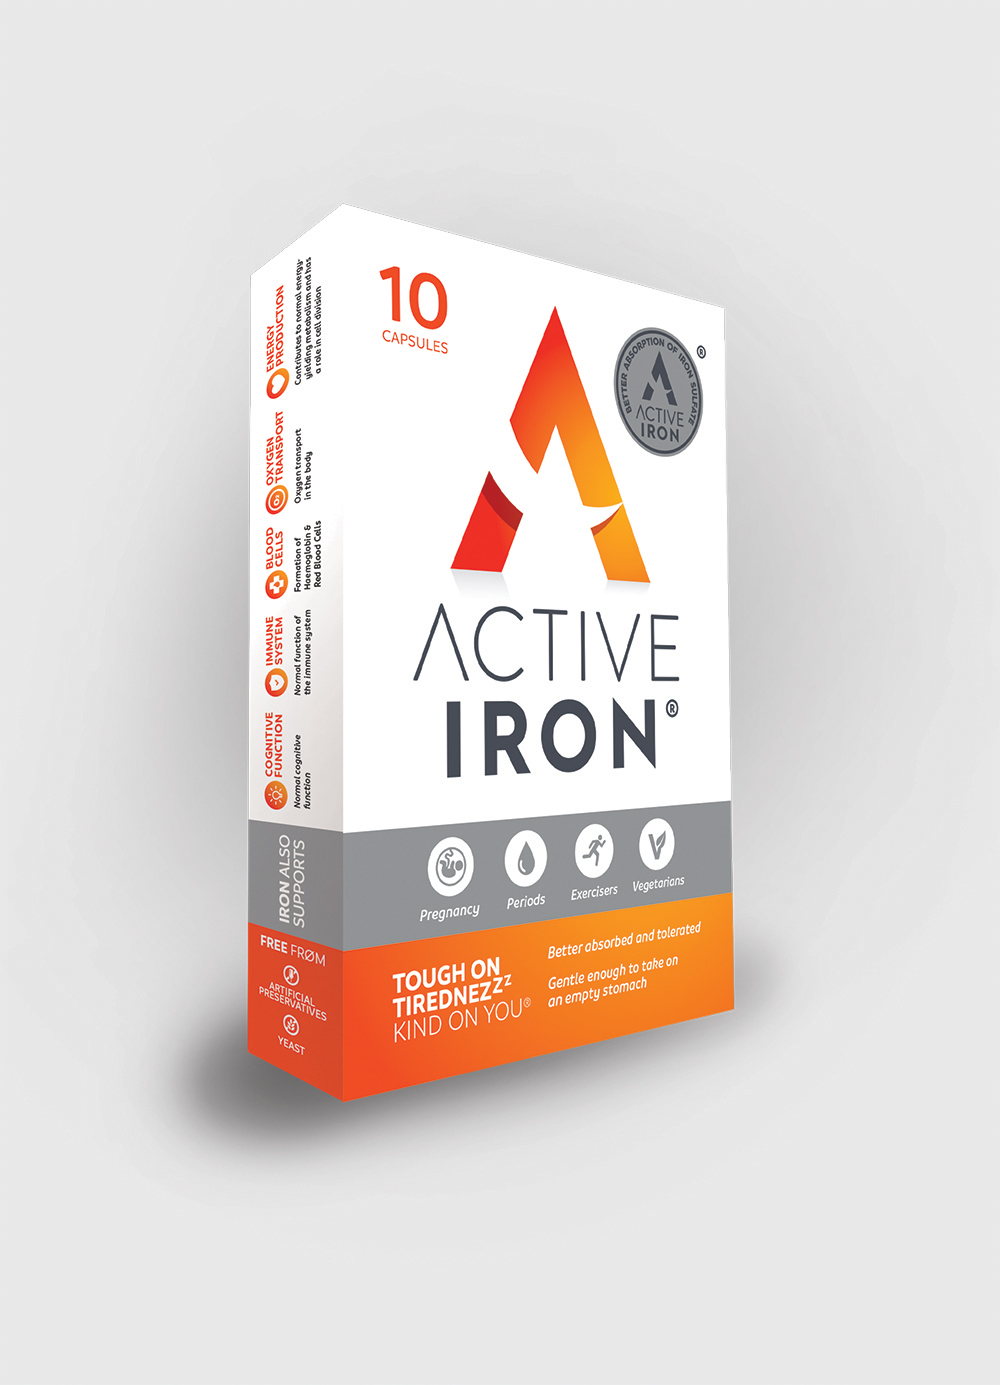 Branding / packaging design  - Active Iron